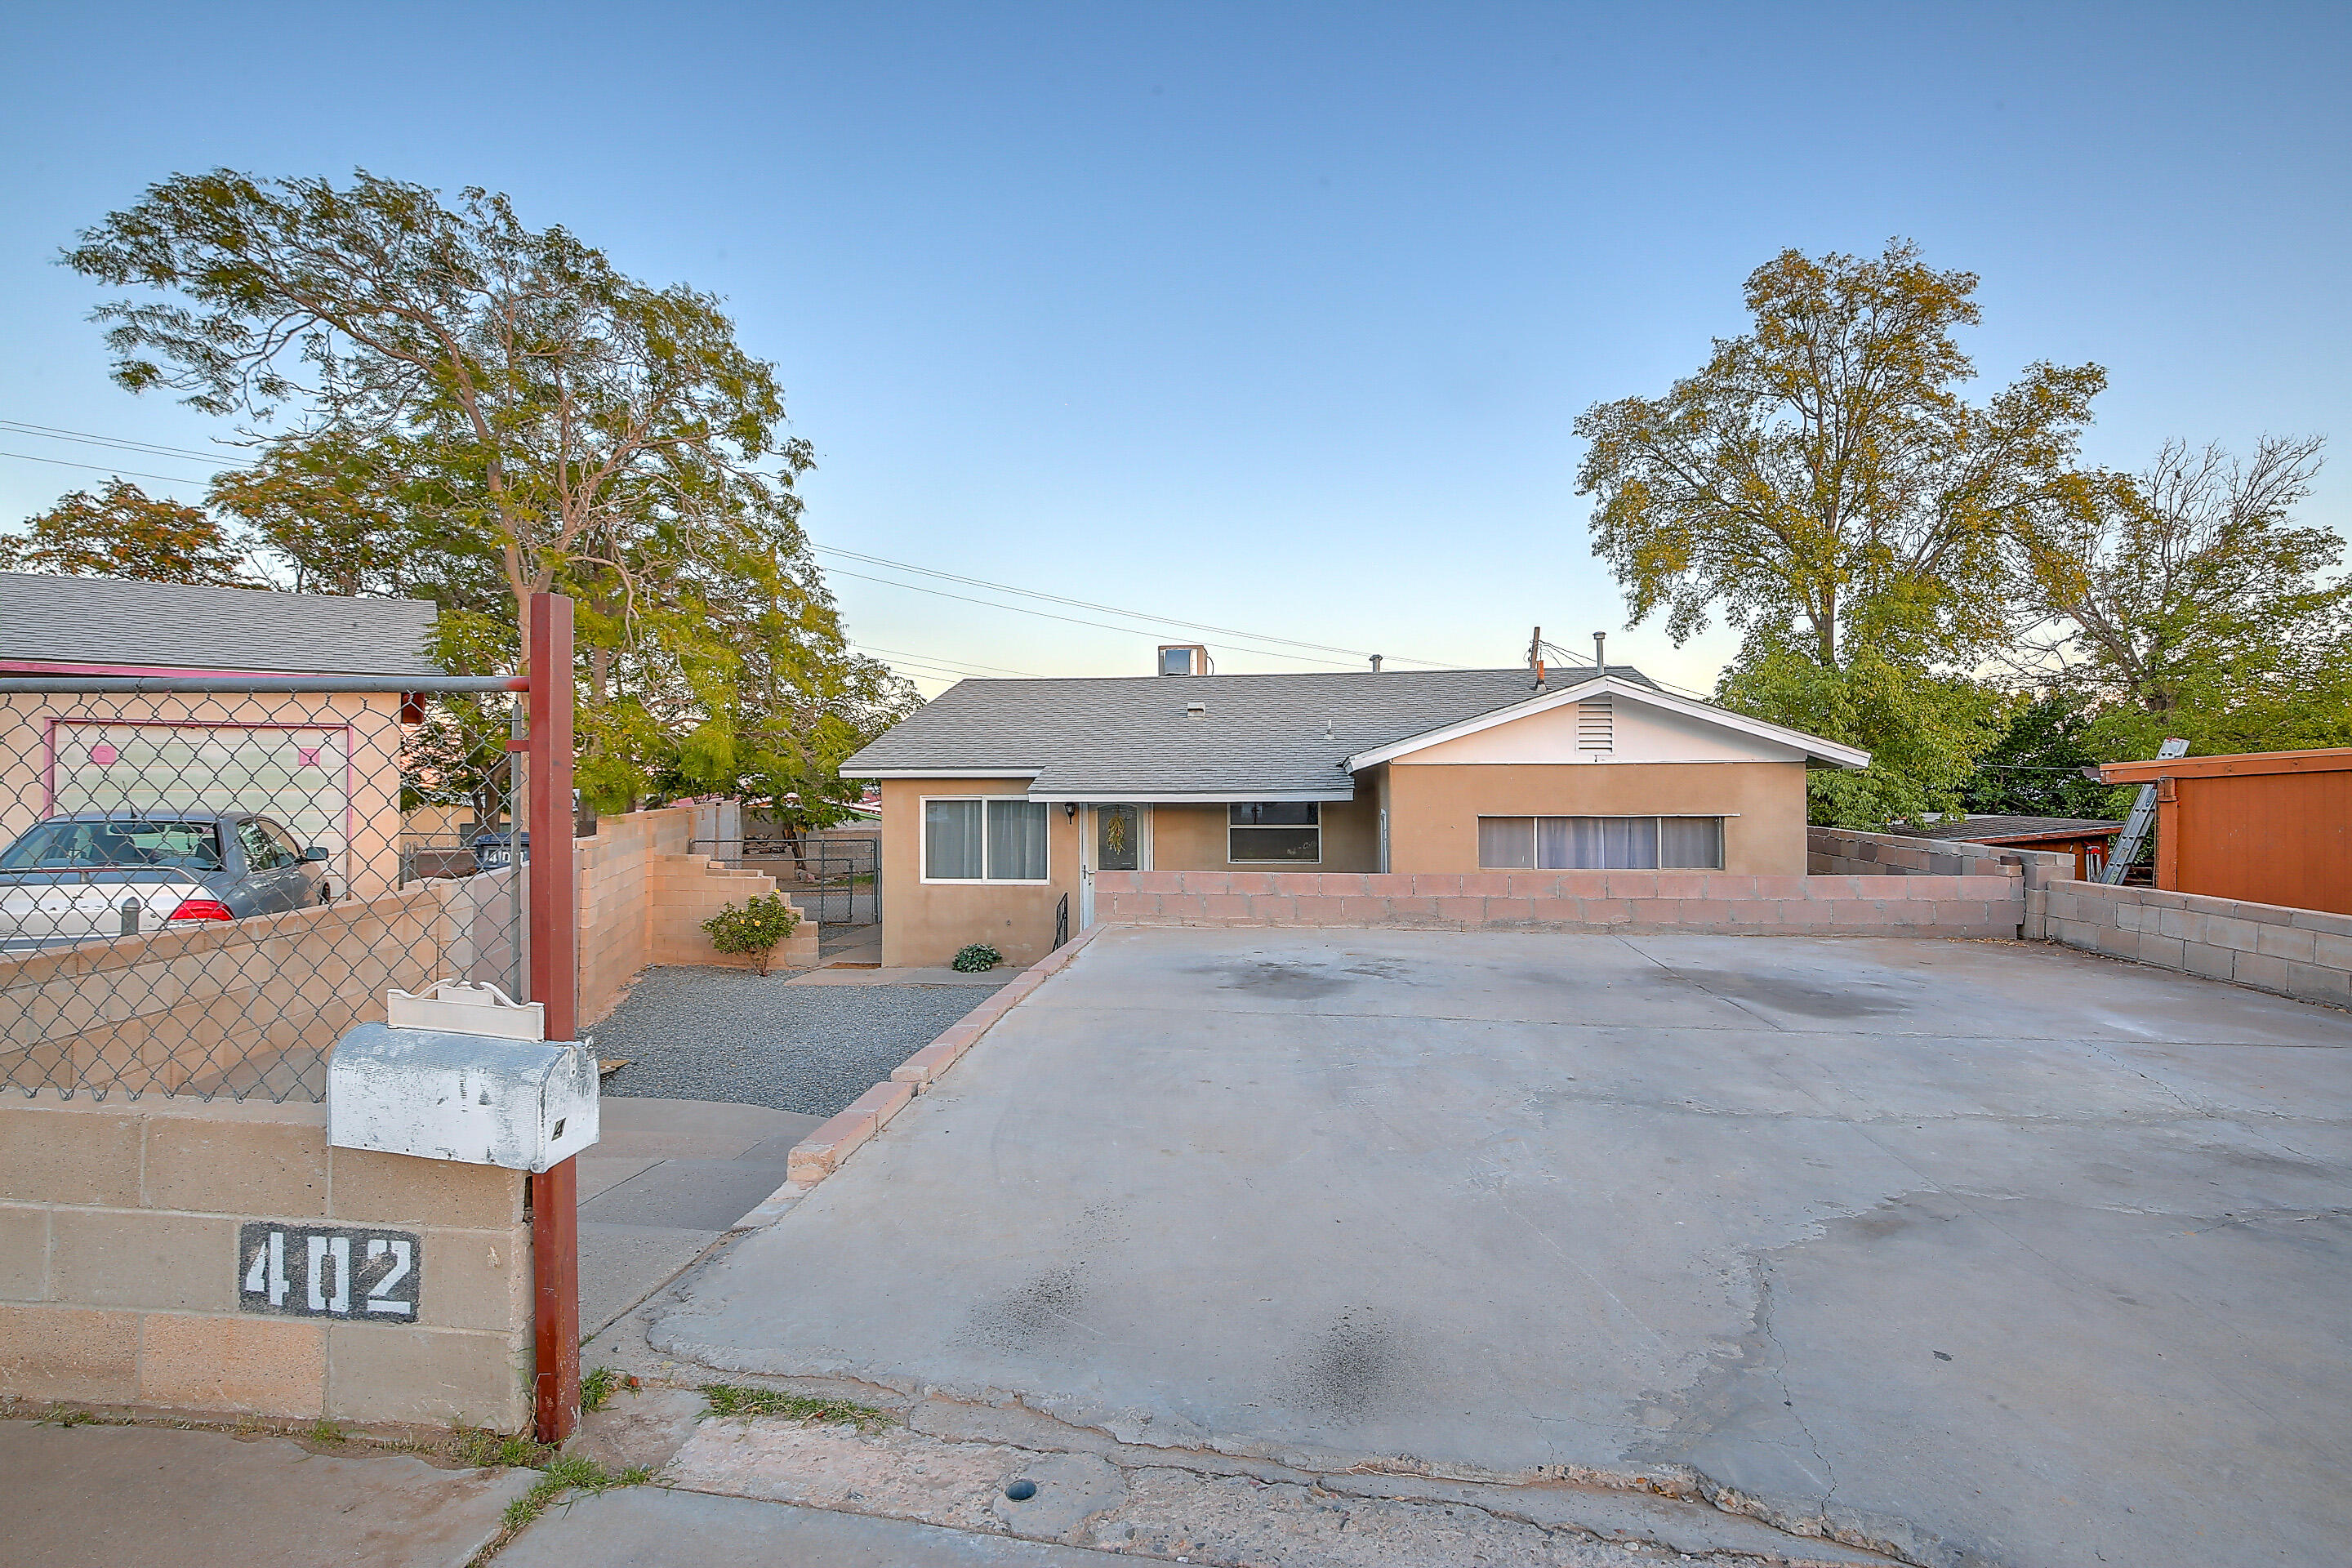 GREAT-LOOKING 3 bedroom in an established south valley neighborhood ready for you to move right on in!  This one comes with an extra room you can make into a guest bedroom, a home office or a home gym--you choose! The open living and dining area features beautiful wood flooring, ceiling fans and a slider to the backyard. Cute kitchen with views to the outdoors and to the living area so the chef can keep an eye on the gourmet dinner and all the happenings.  Beautiful accent paint throughout with a combination of carpet and wood flooring.  Extra large backyard with a covered patio and walled in for privacy. A cement pad has been added for extra parking in the front large enough for trailer or RV parking. This one is close to the interstate, shopping and all the things you need!  Come see it!